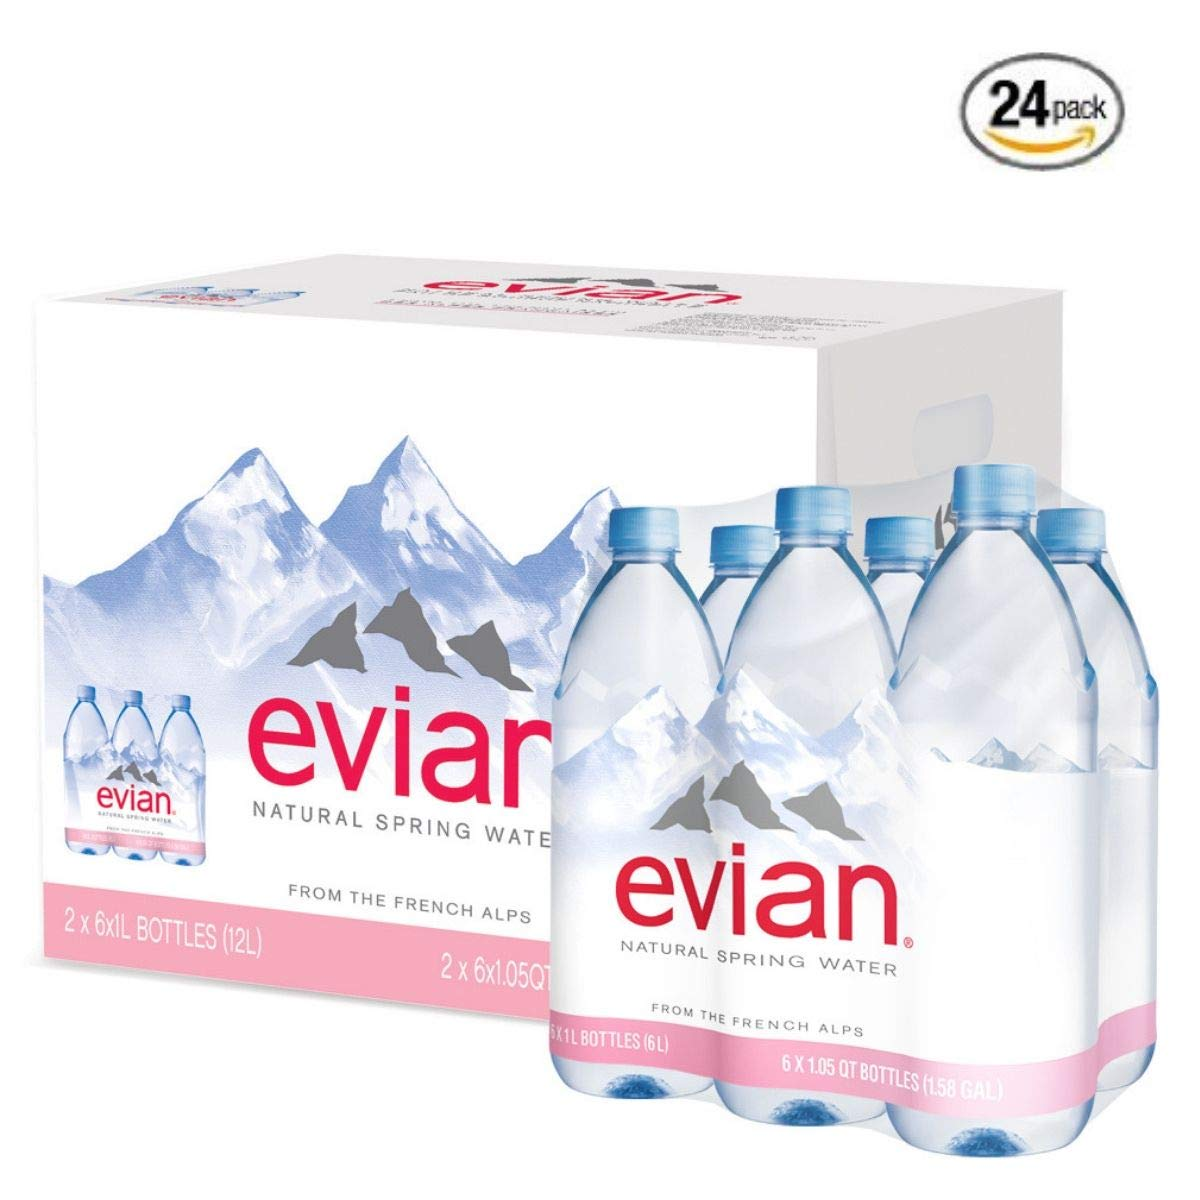 evian Natural Spring Water, 1 Liter (Pack of 24) by evian (Image #1)